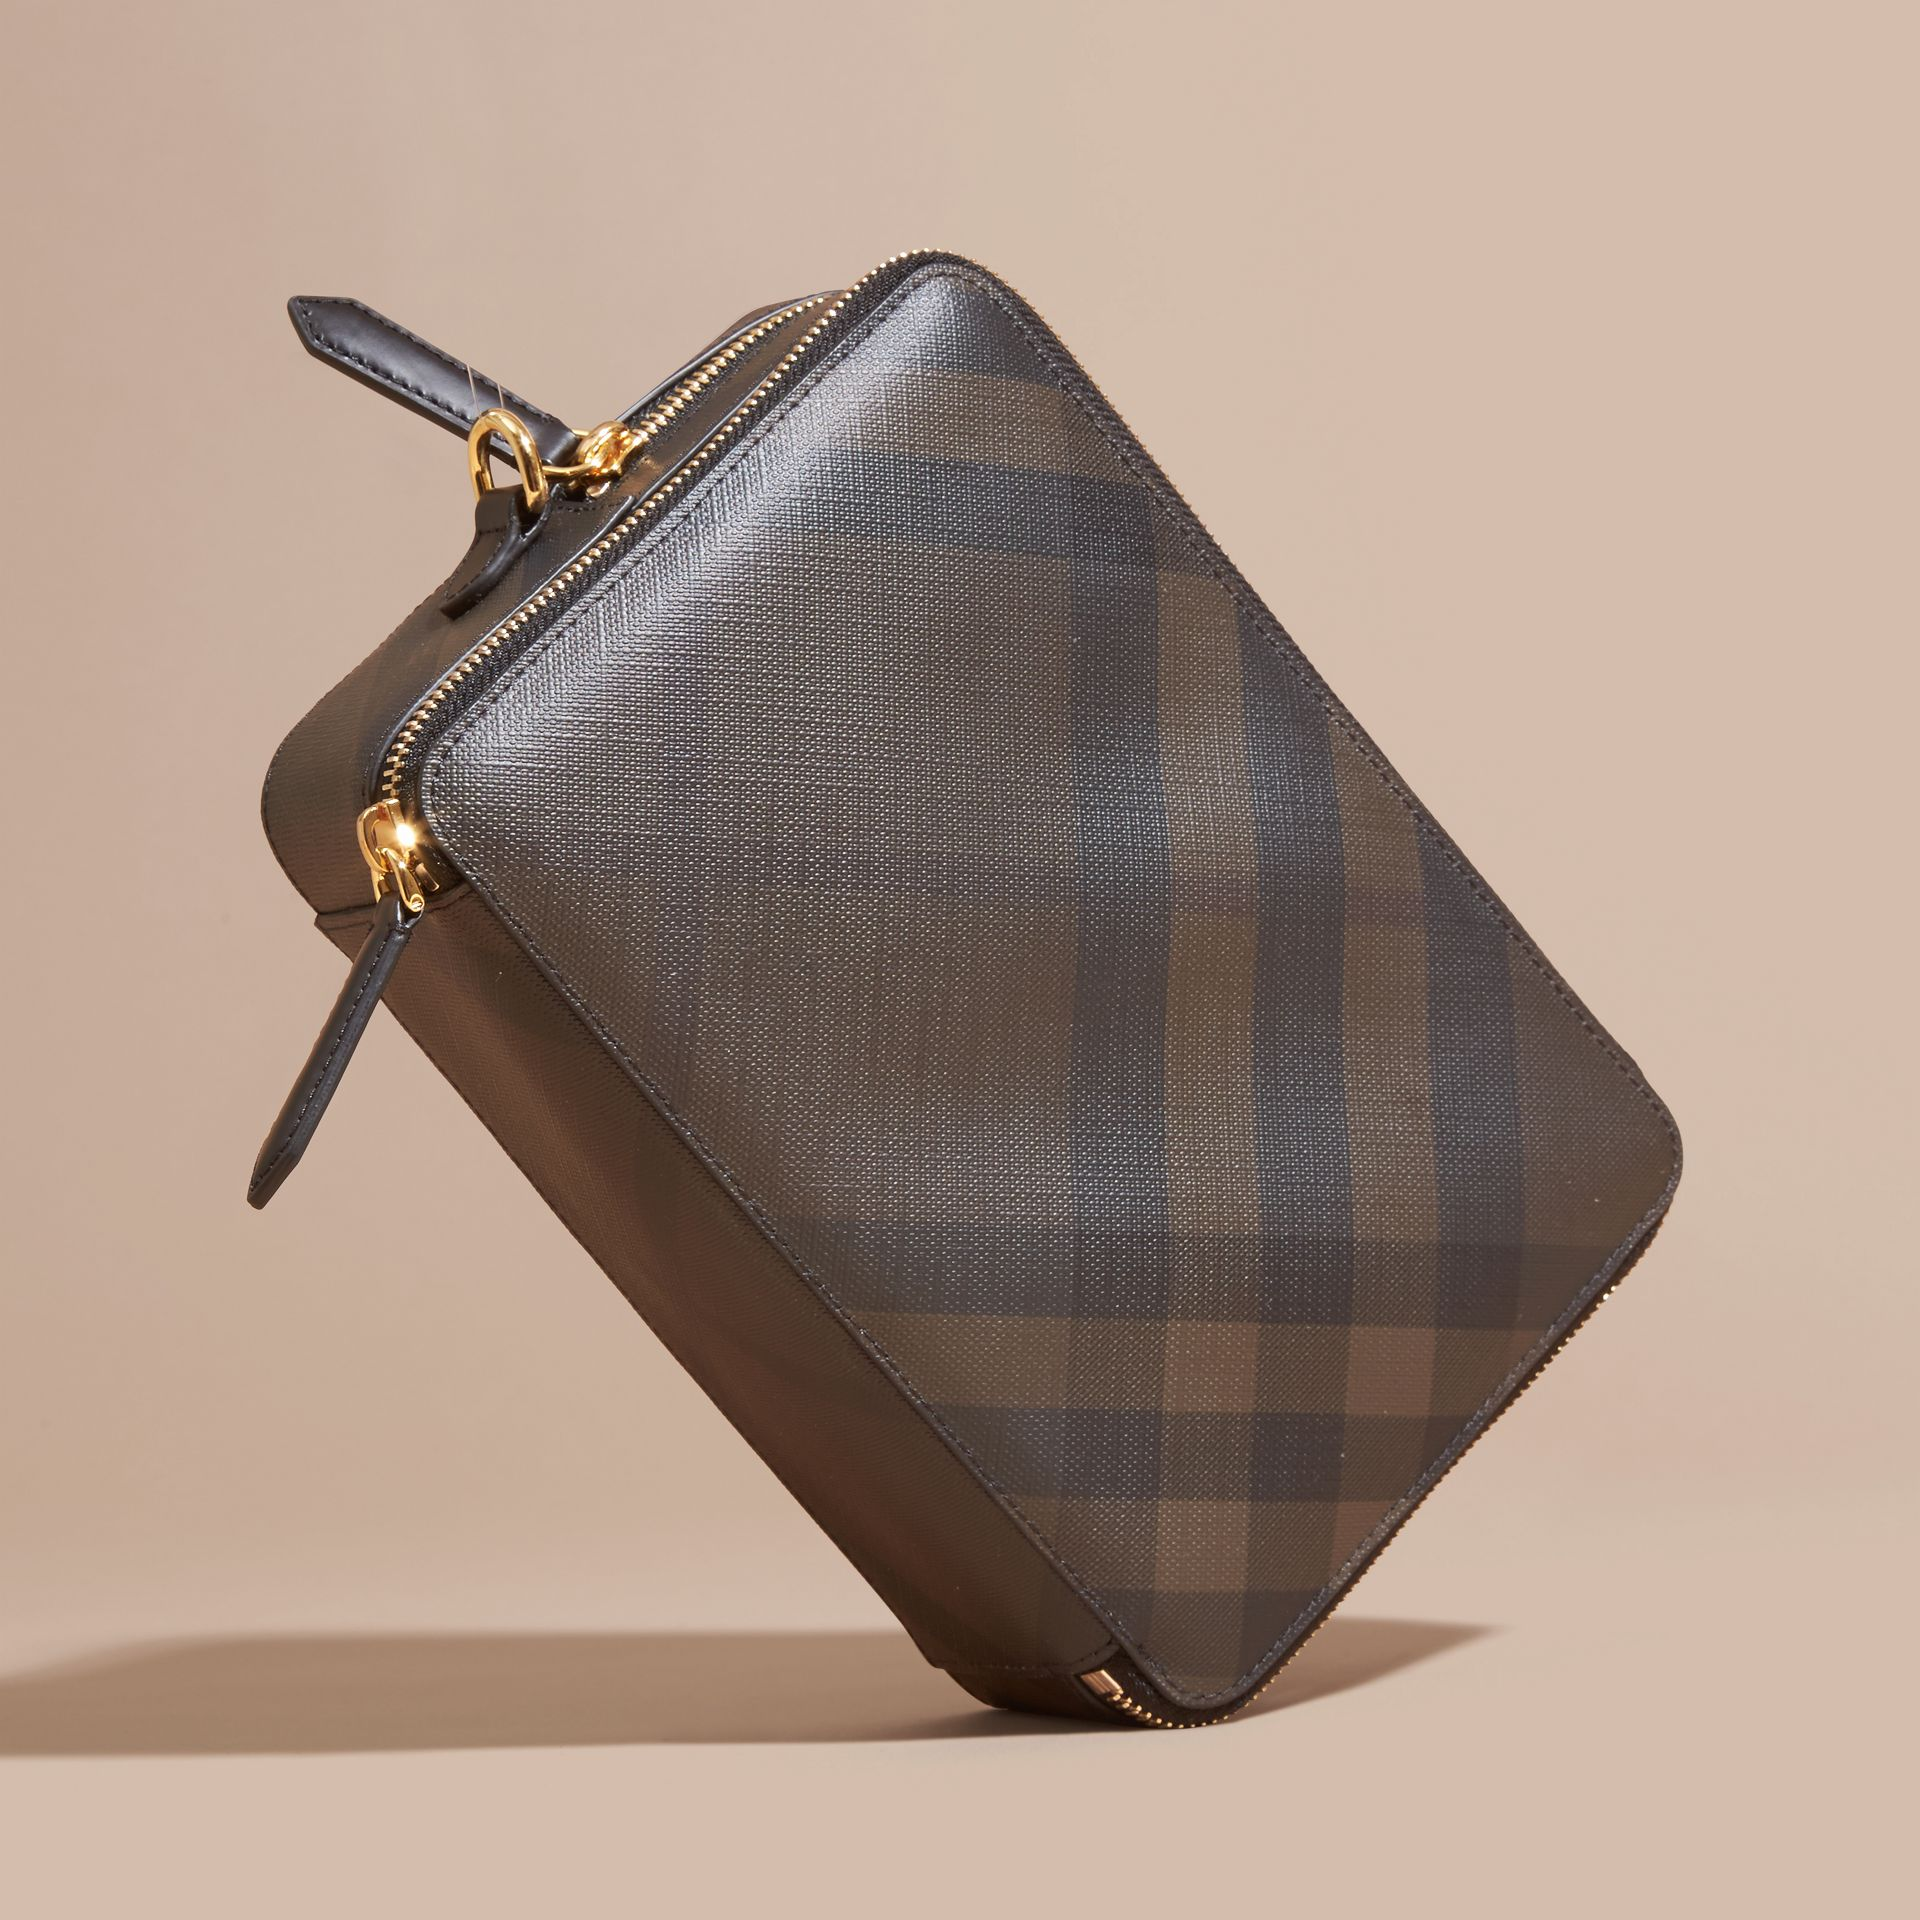 Leather-trimmed London Check Pouch in Chocolate/black - Men | Burberry United States - gallery image 5